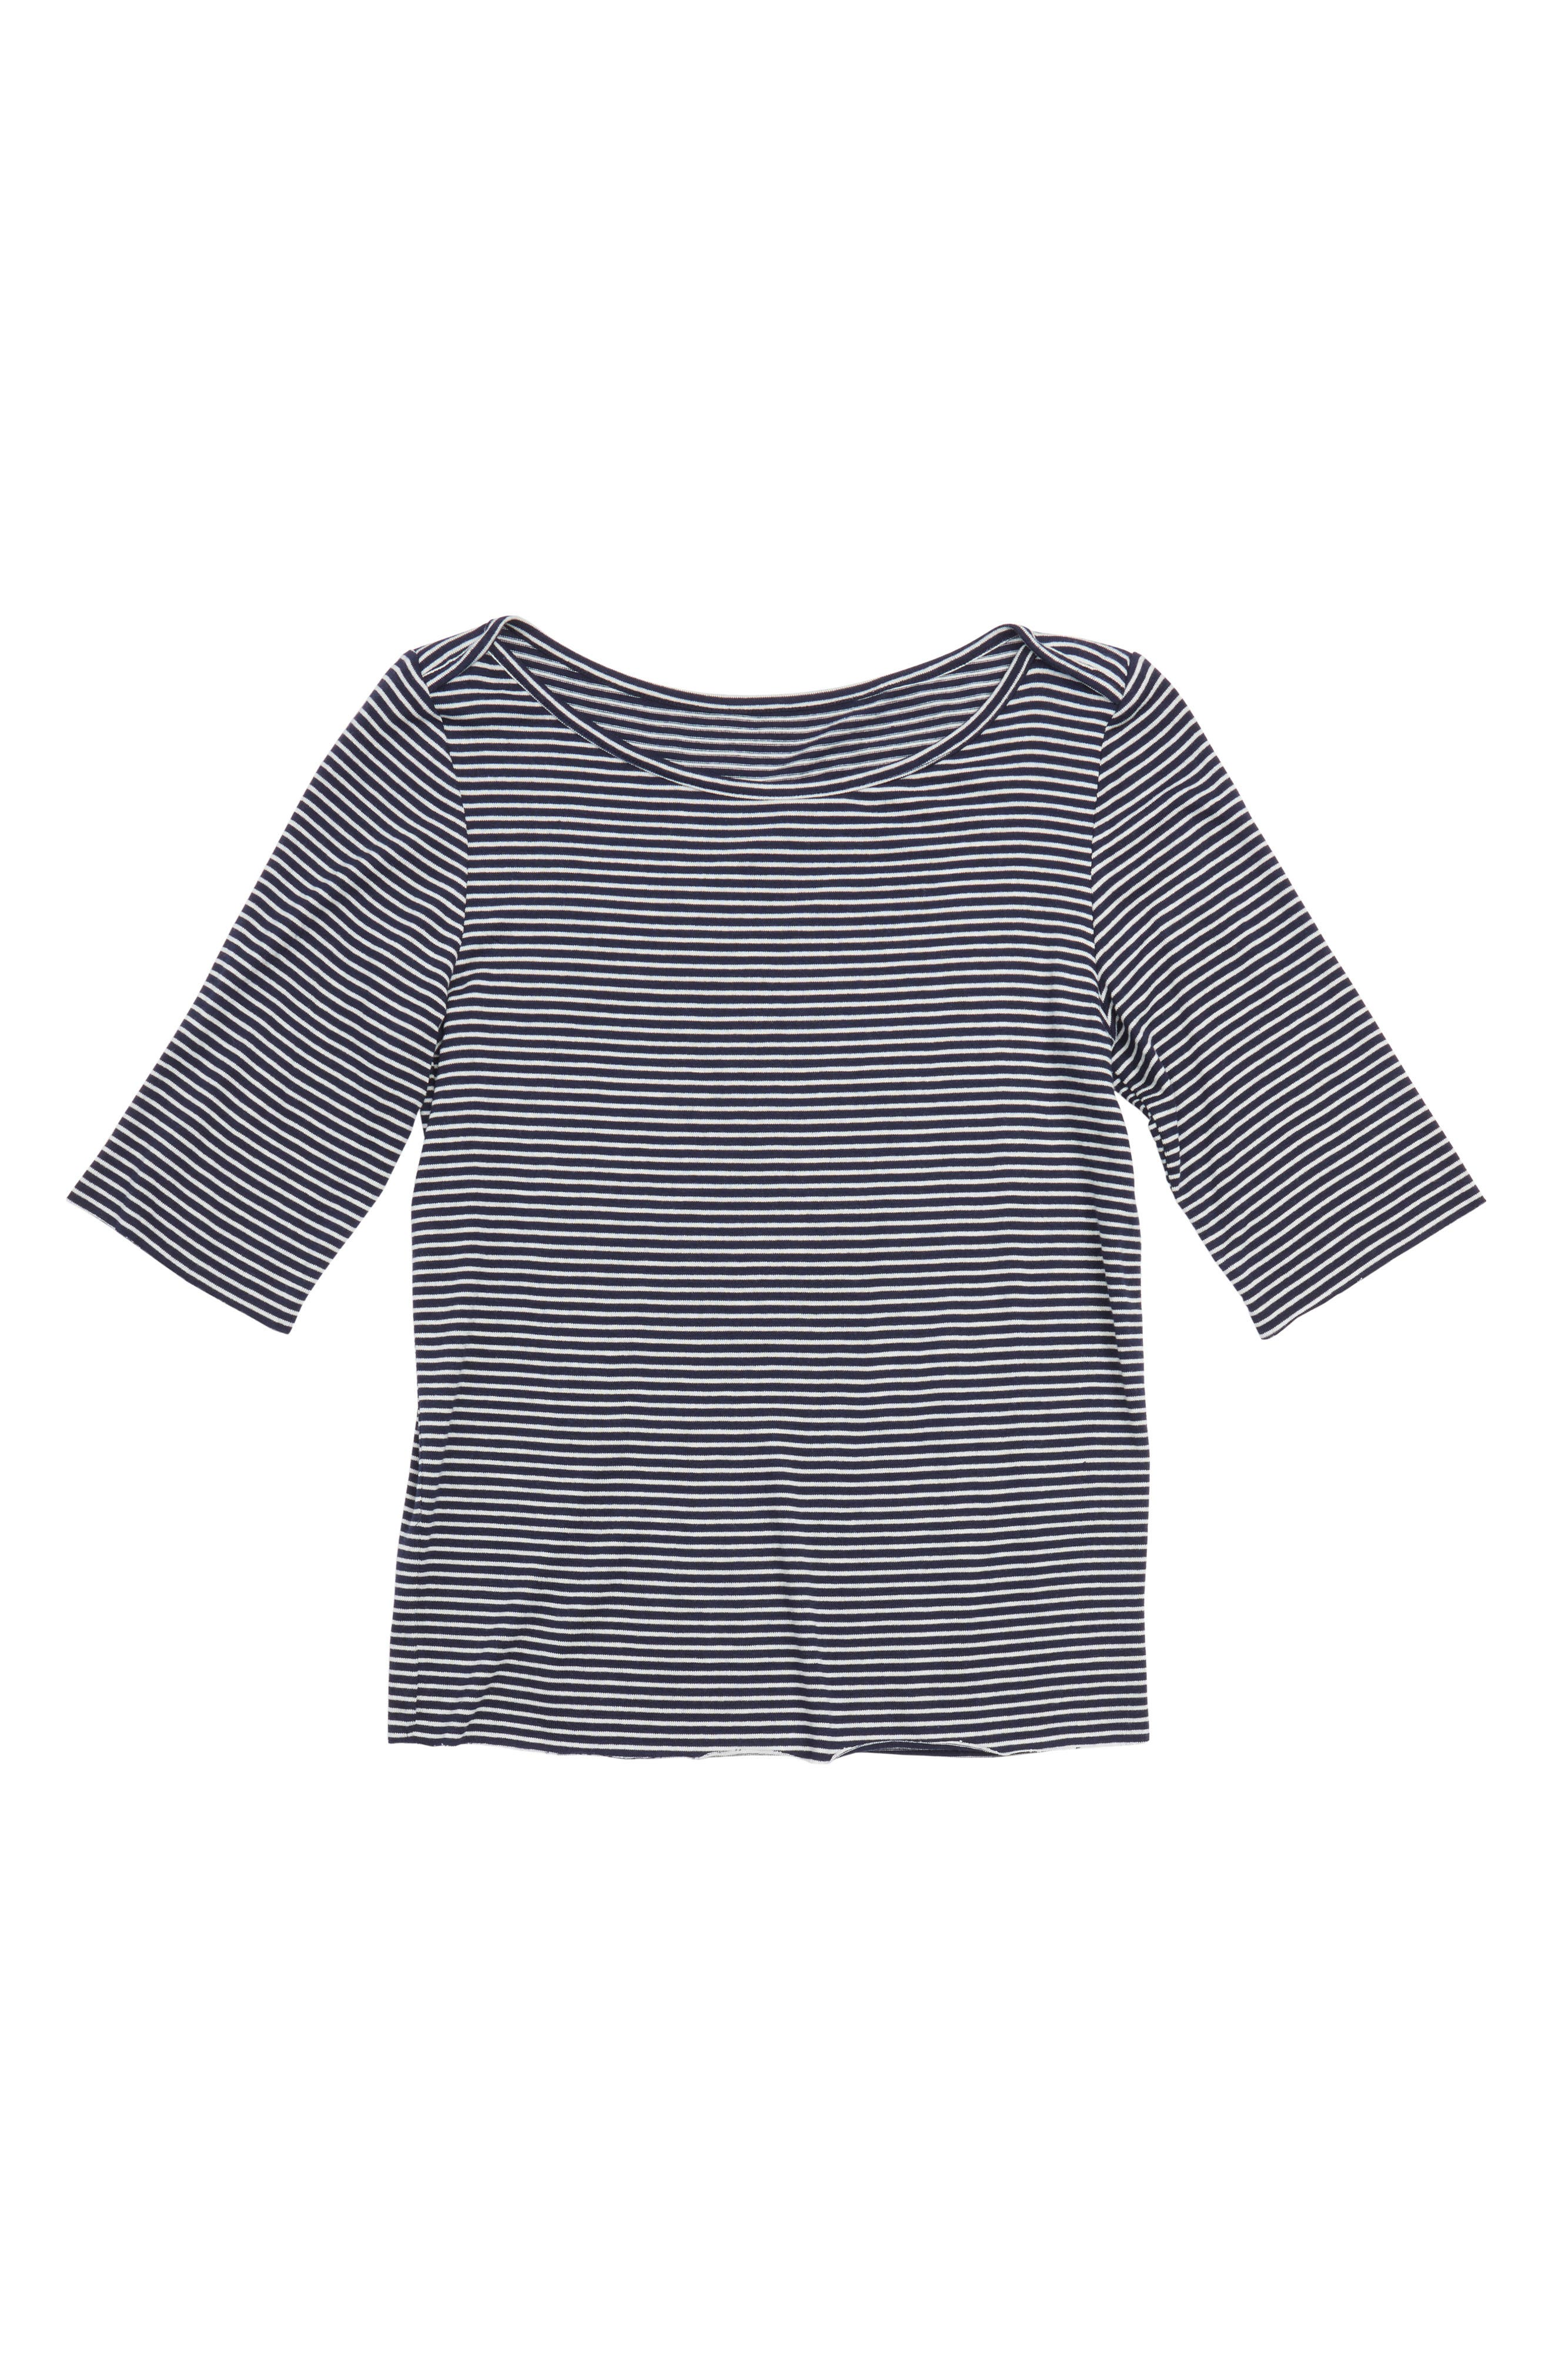 Alternate Image 1 Selected - Treasure & Bond Stripe Tee (Big Girls)